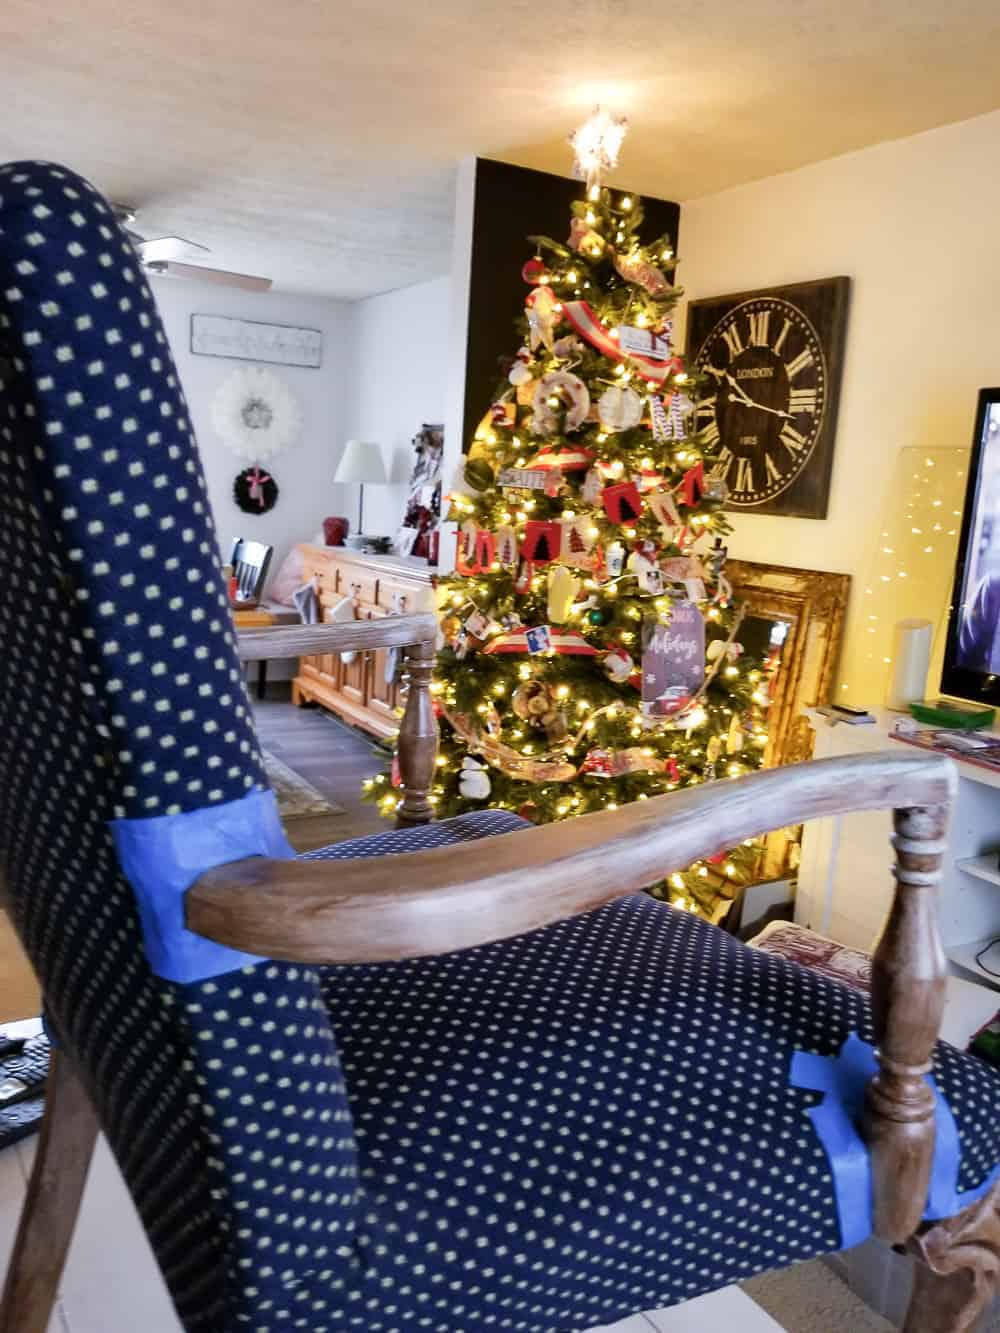 Blue fabric chair with wood trim